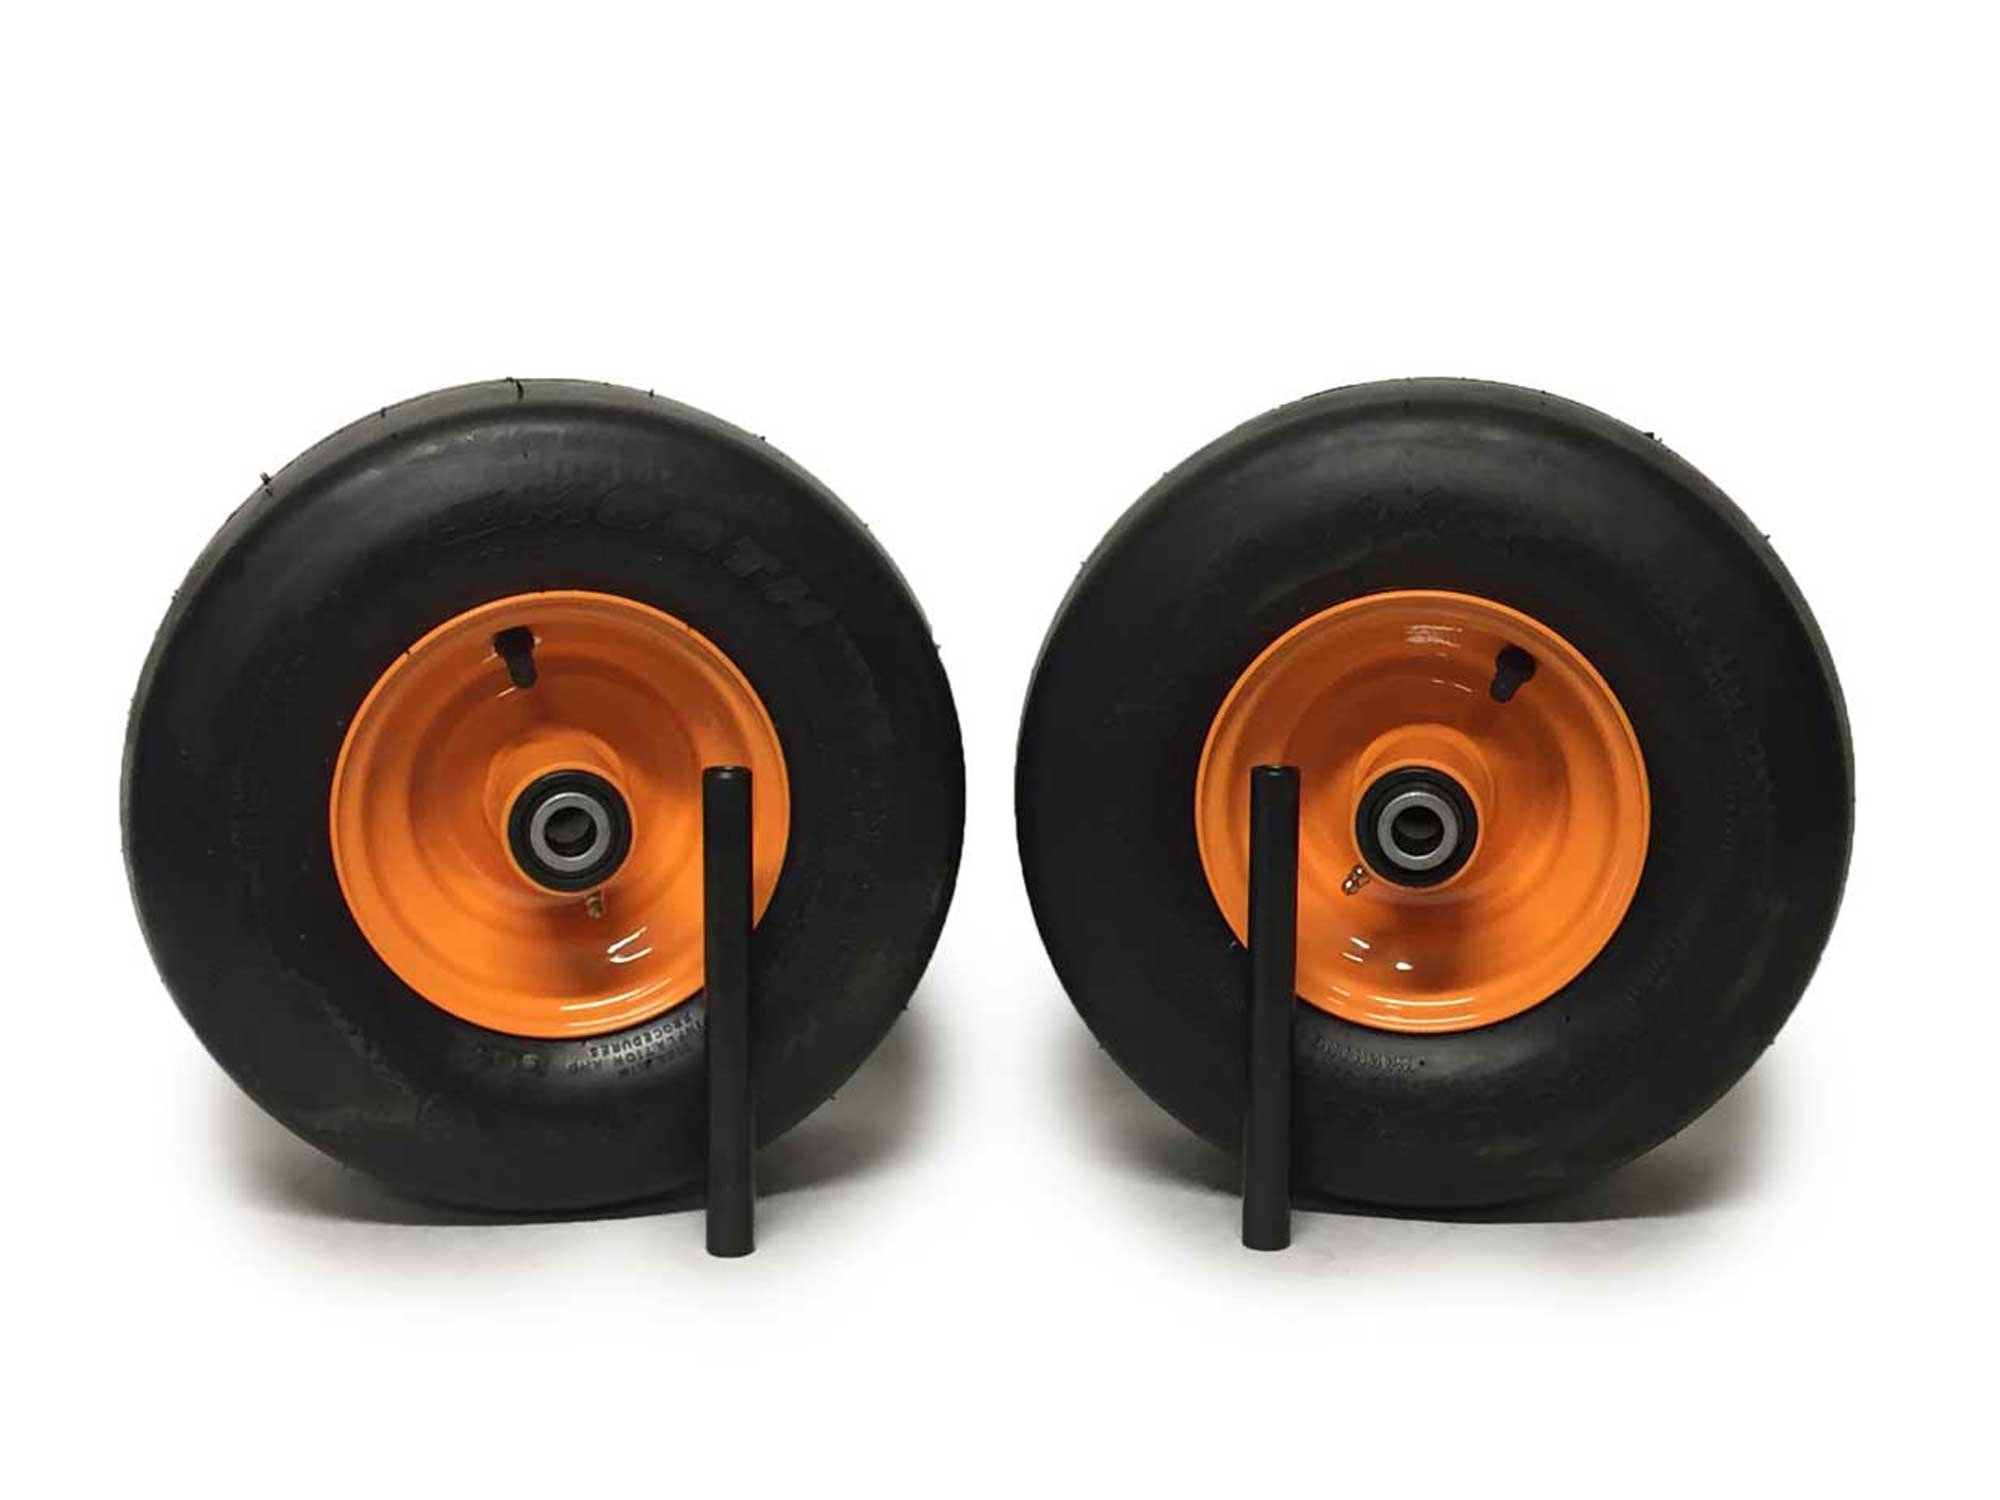 Scag Pneumatic Tire Assemblies 13x5.00-6 Orange Replaces Scag 482503 481551 9277 by MowerPartsGroup (Image #1)